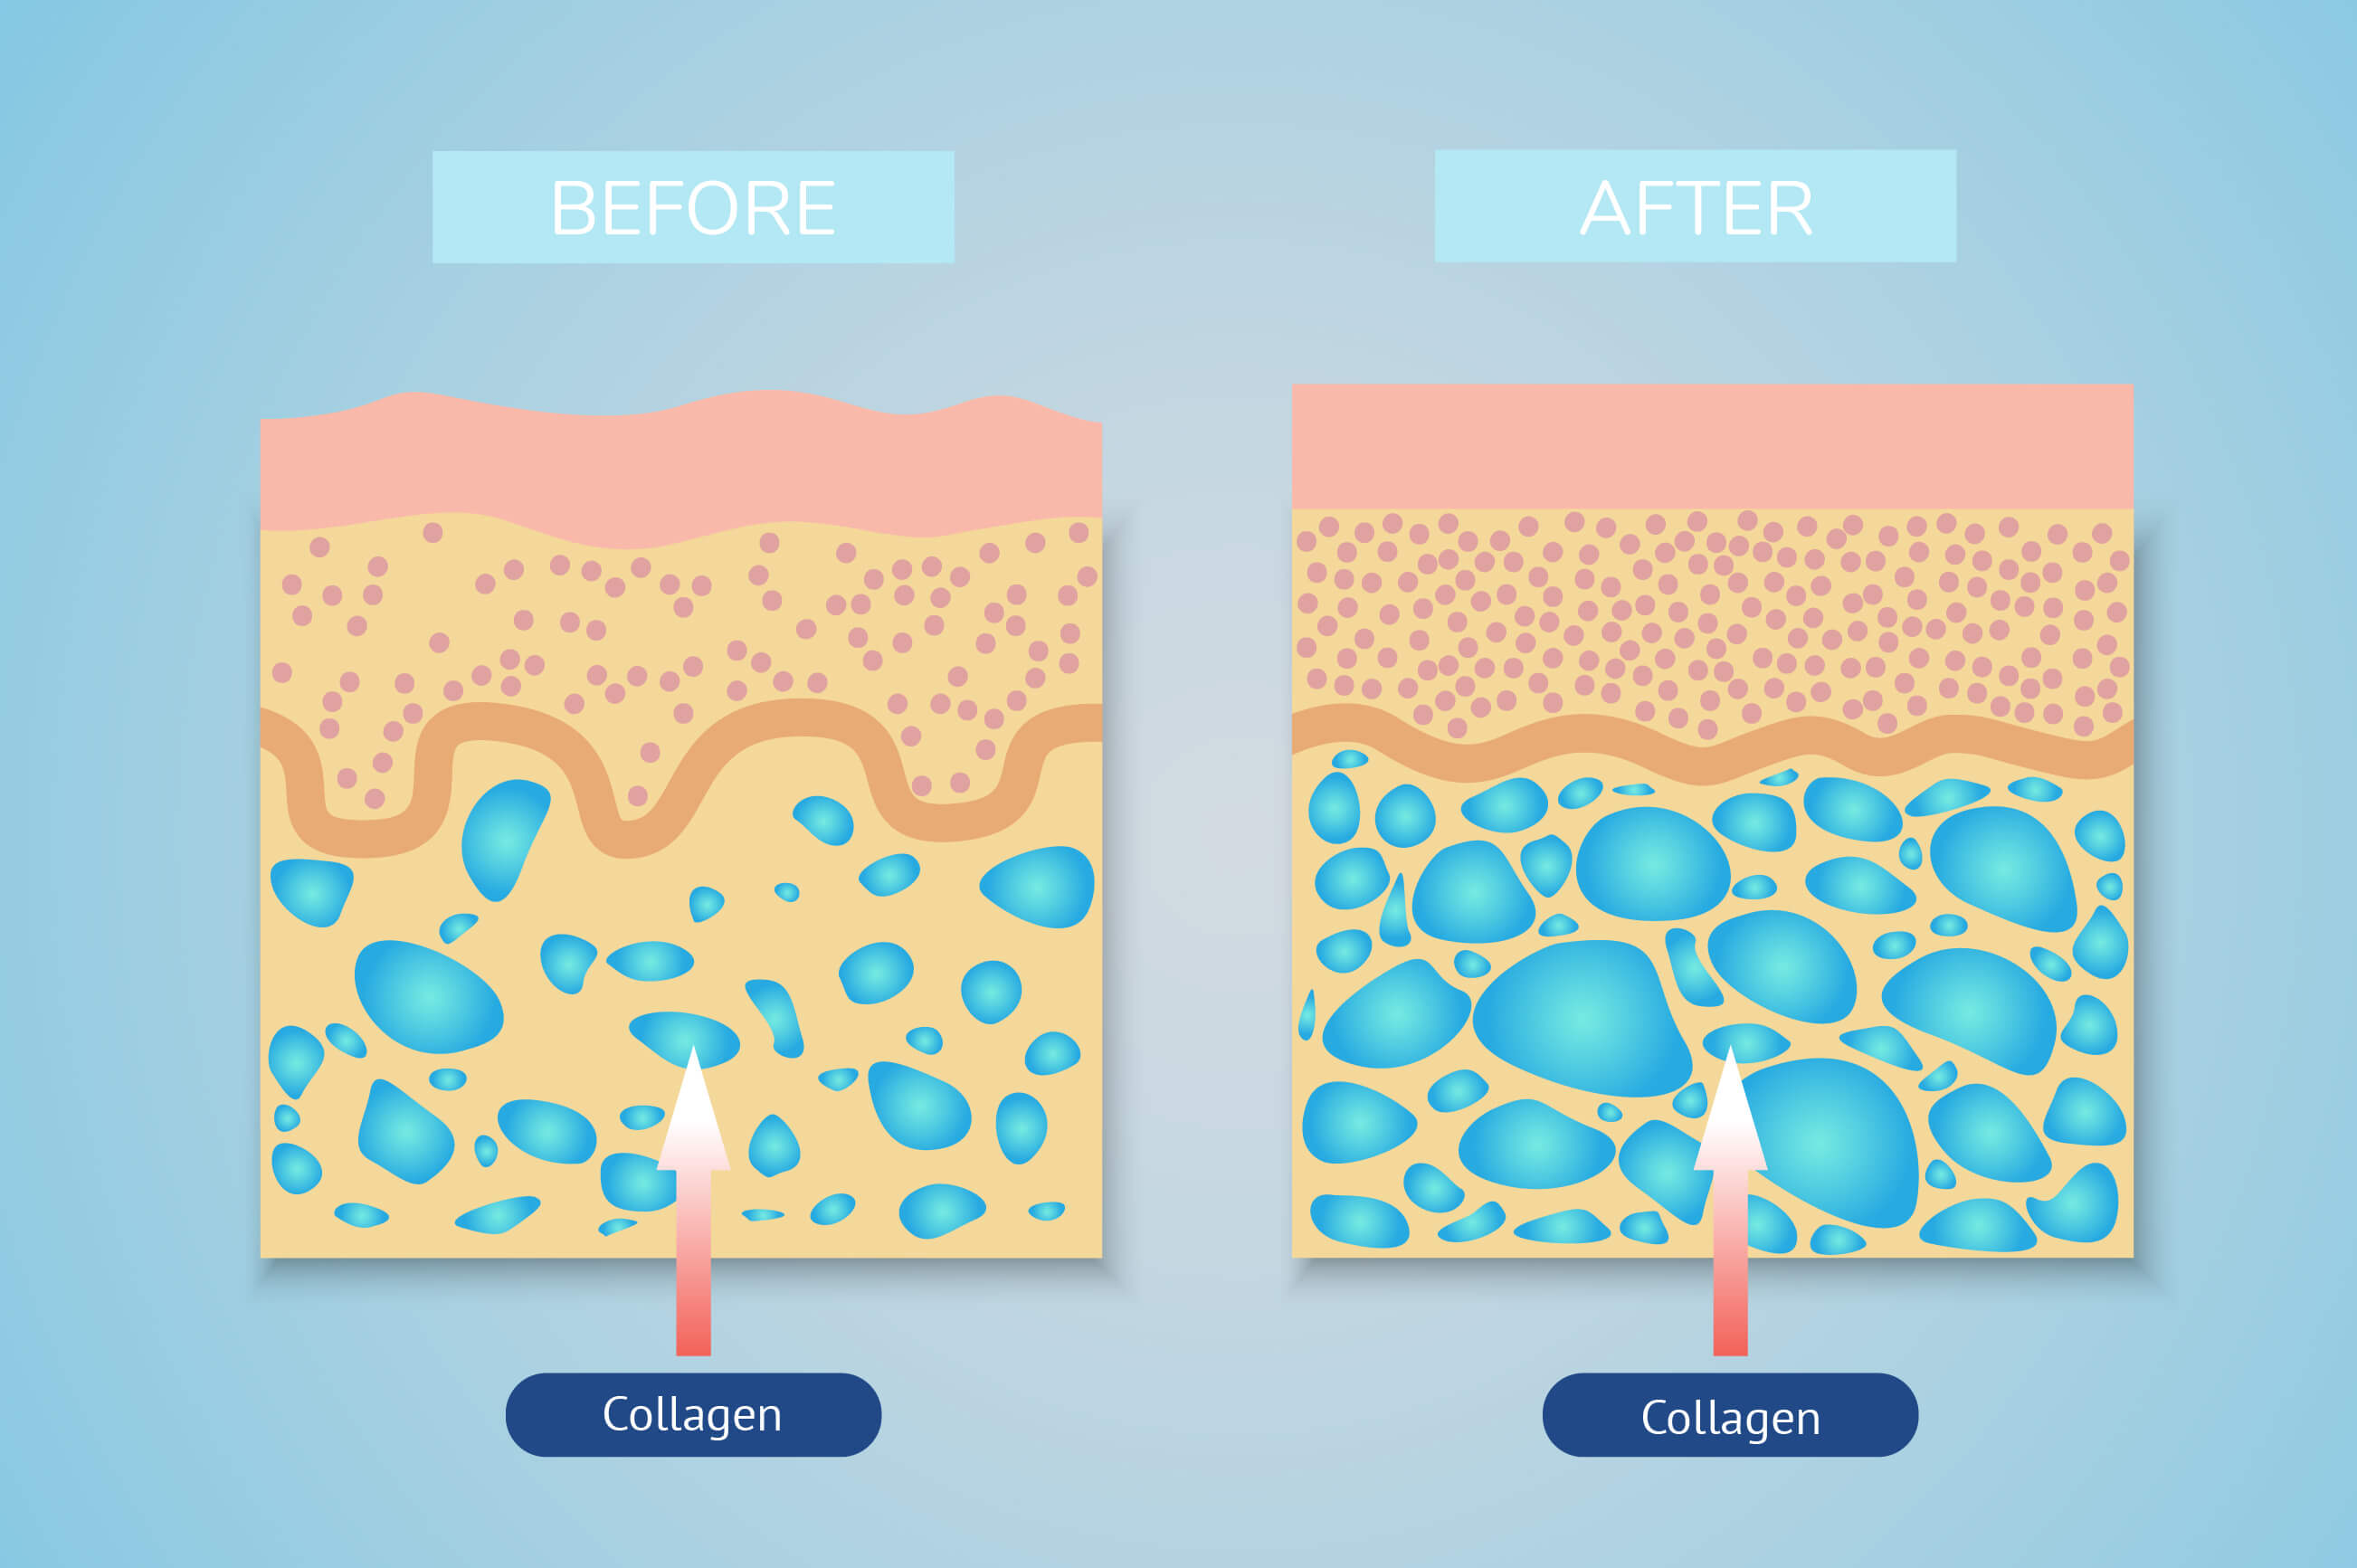 Illustration of the effect of collagen on skin before and after